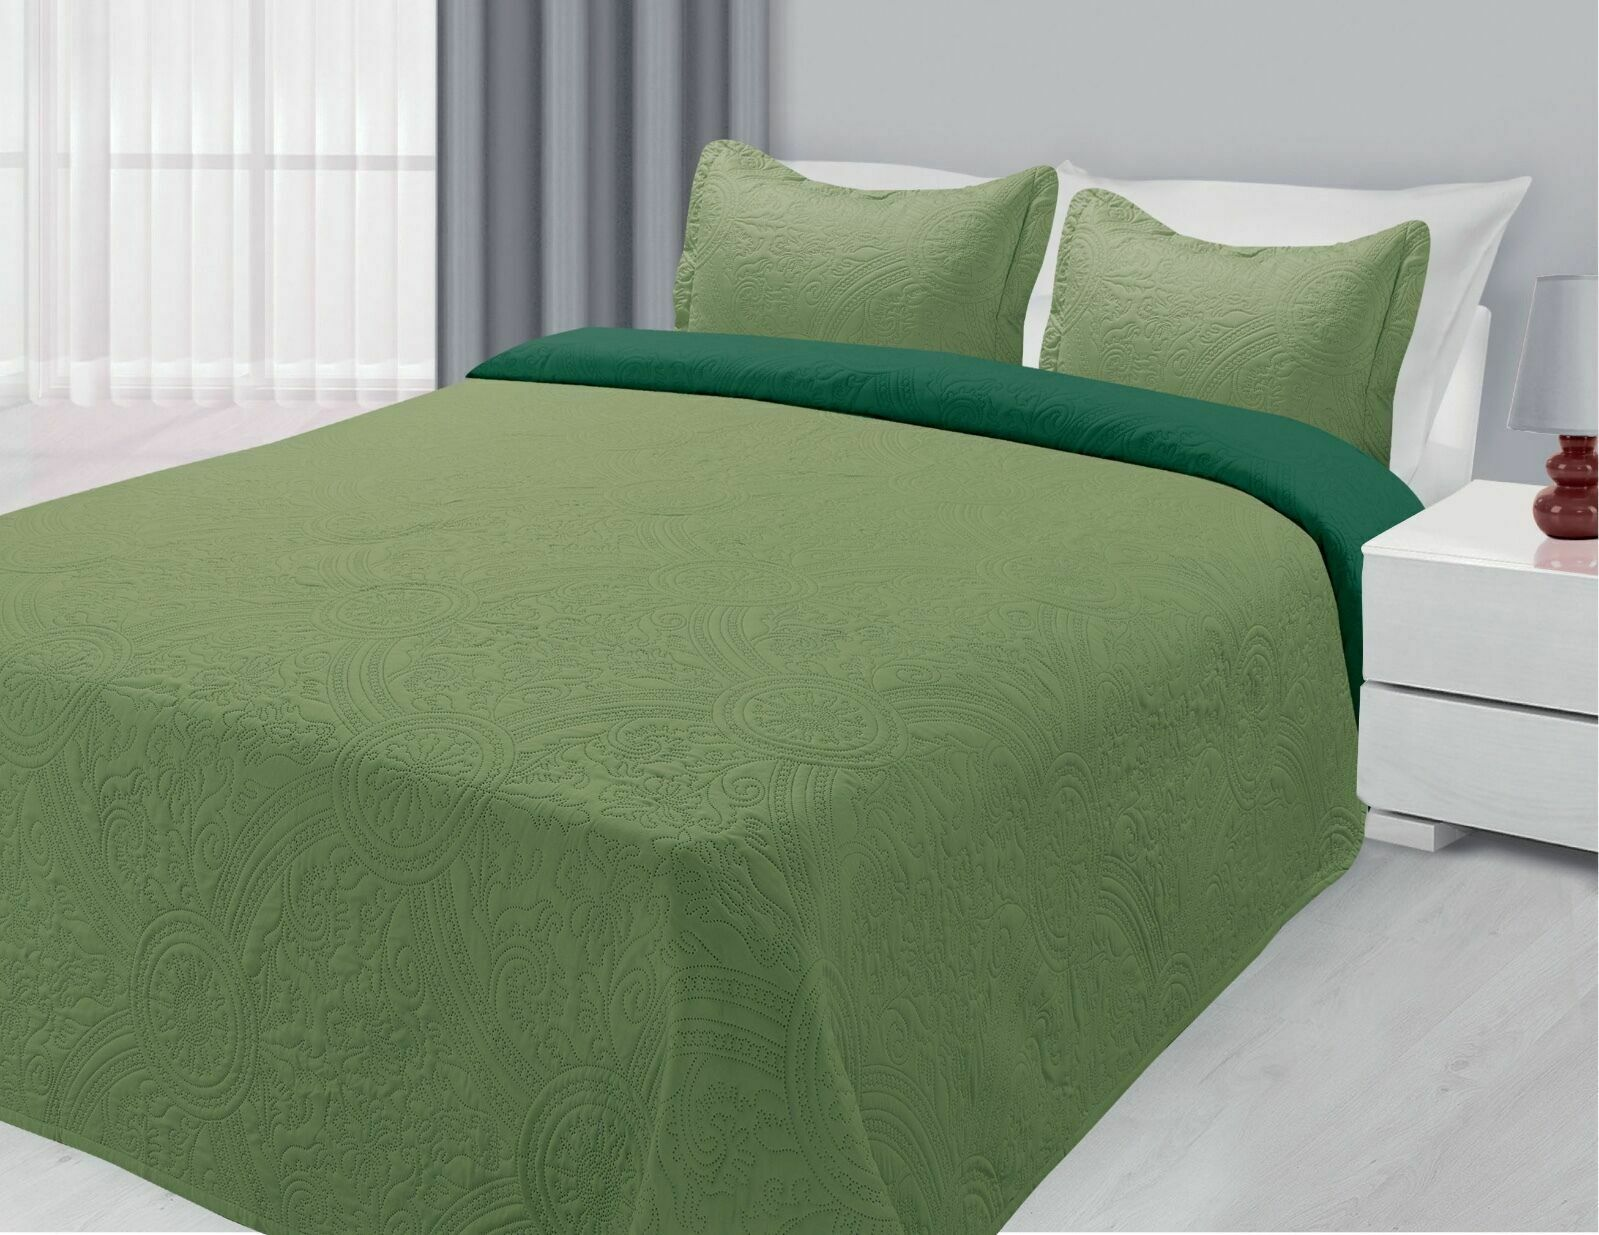 Reversible Quilted Bedspread Embossed 3-Piece Coverlet Bed S